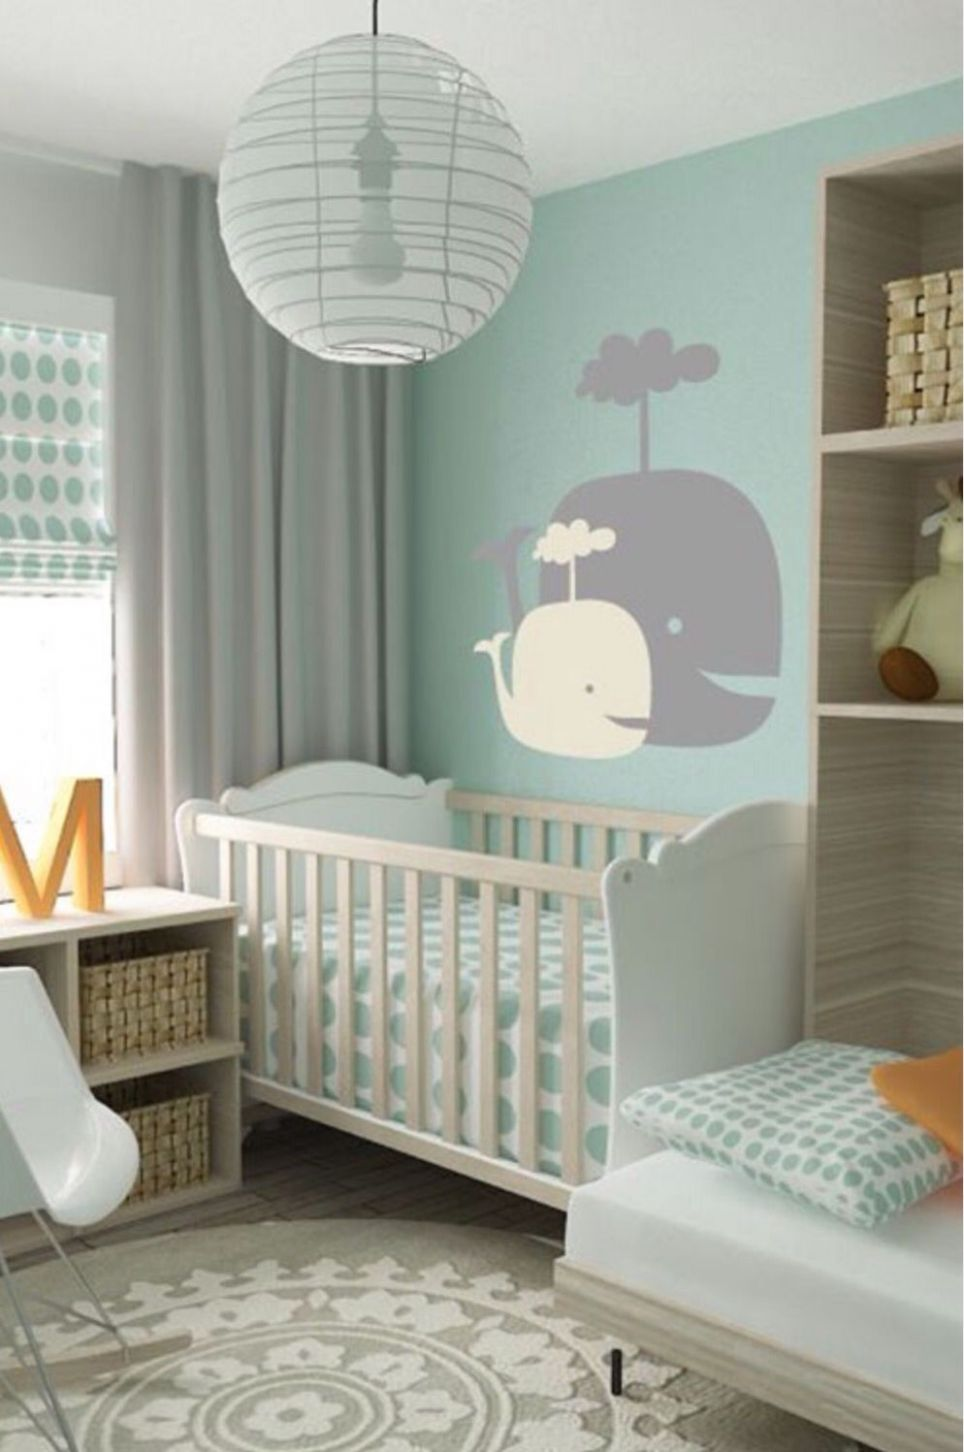 Pin on Baby room ideas